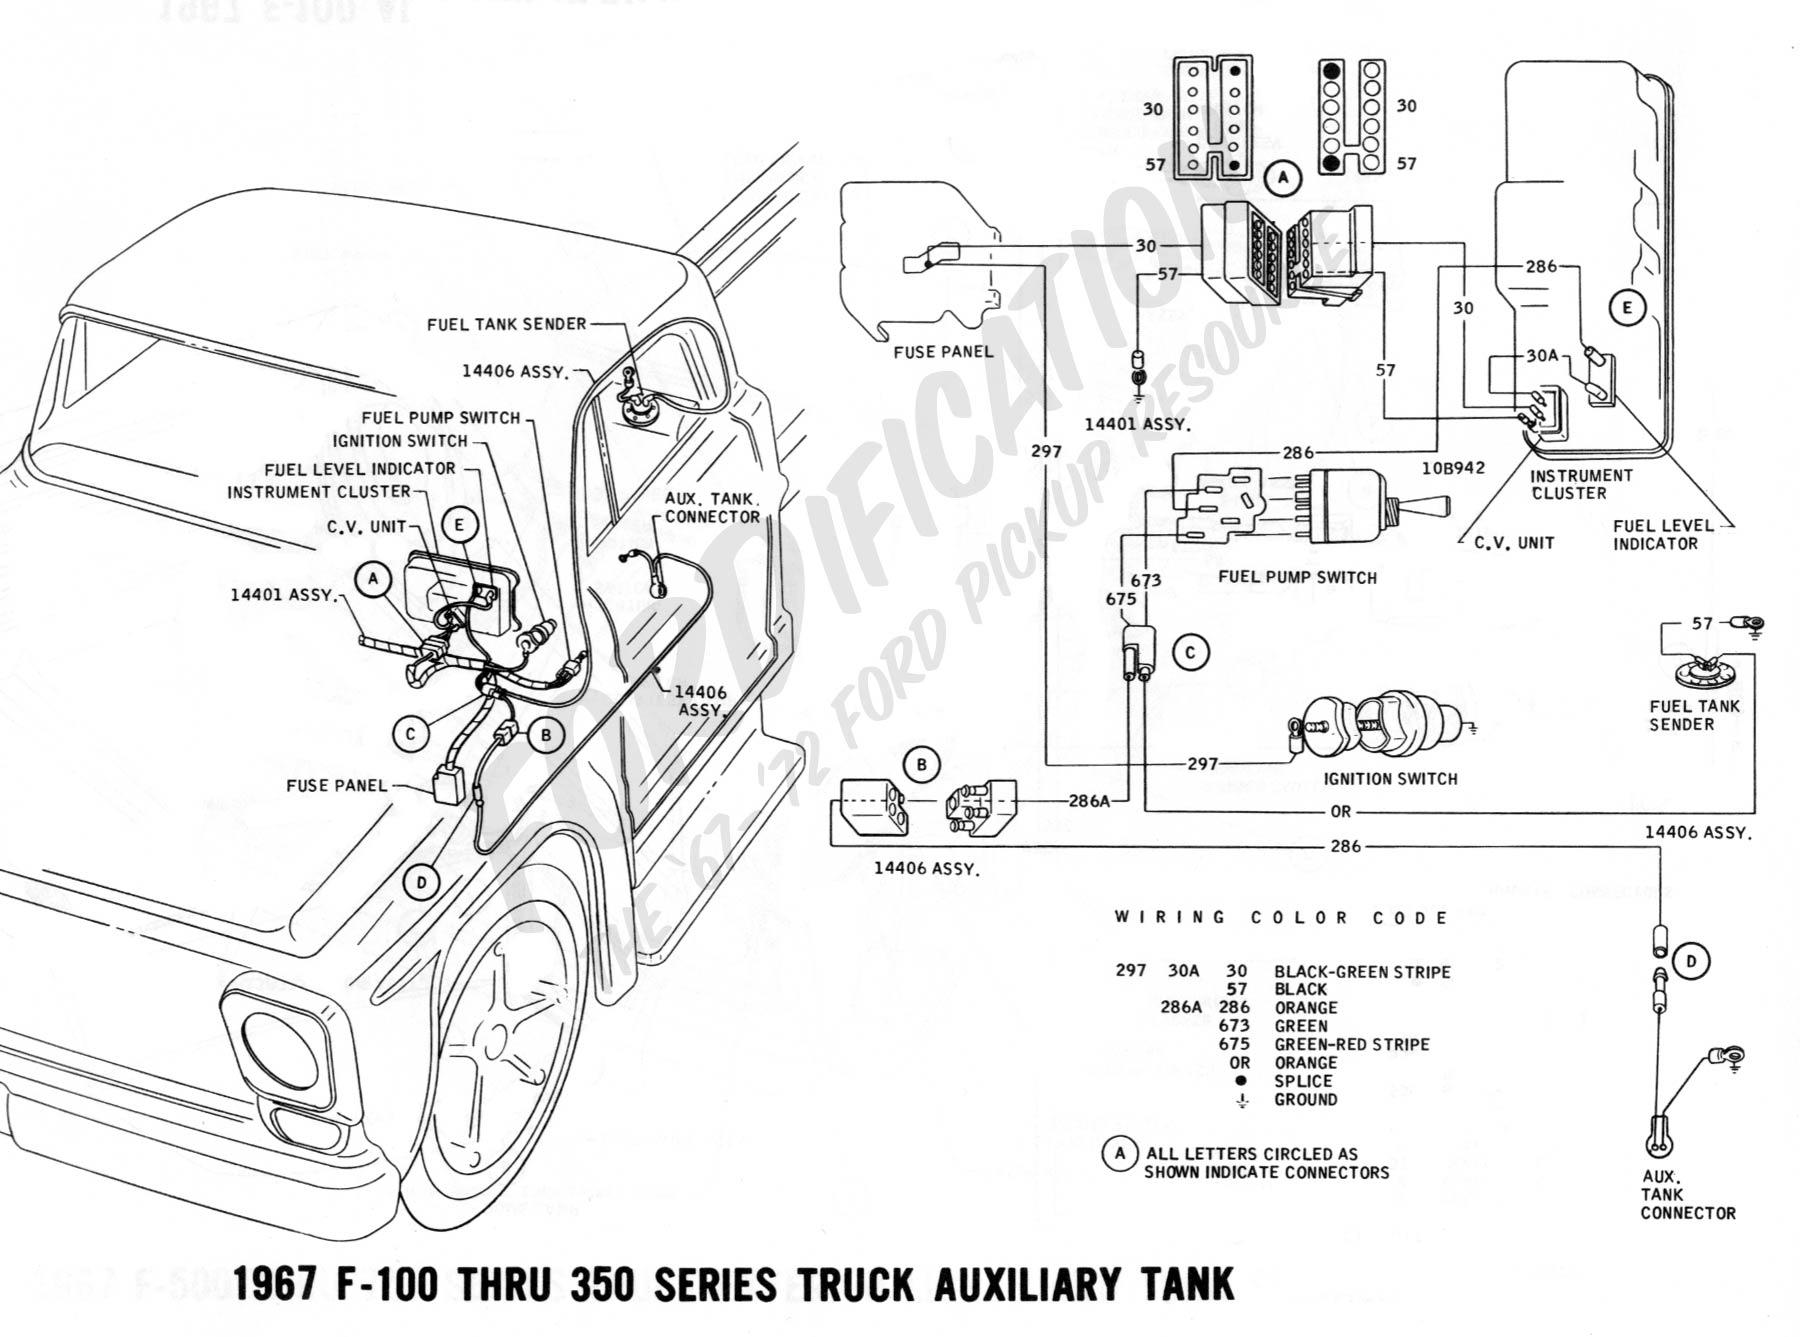 Schematics_h on 88 Ford Ranger Wiring Diagram